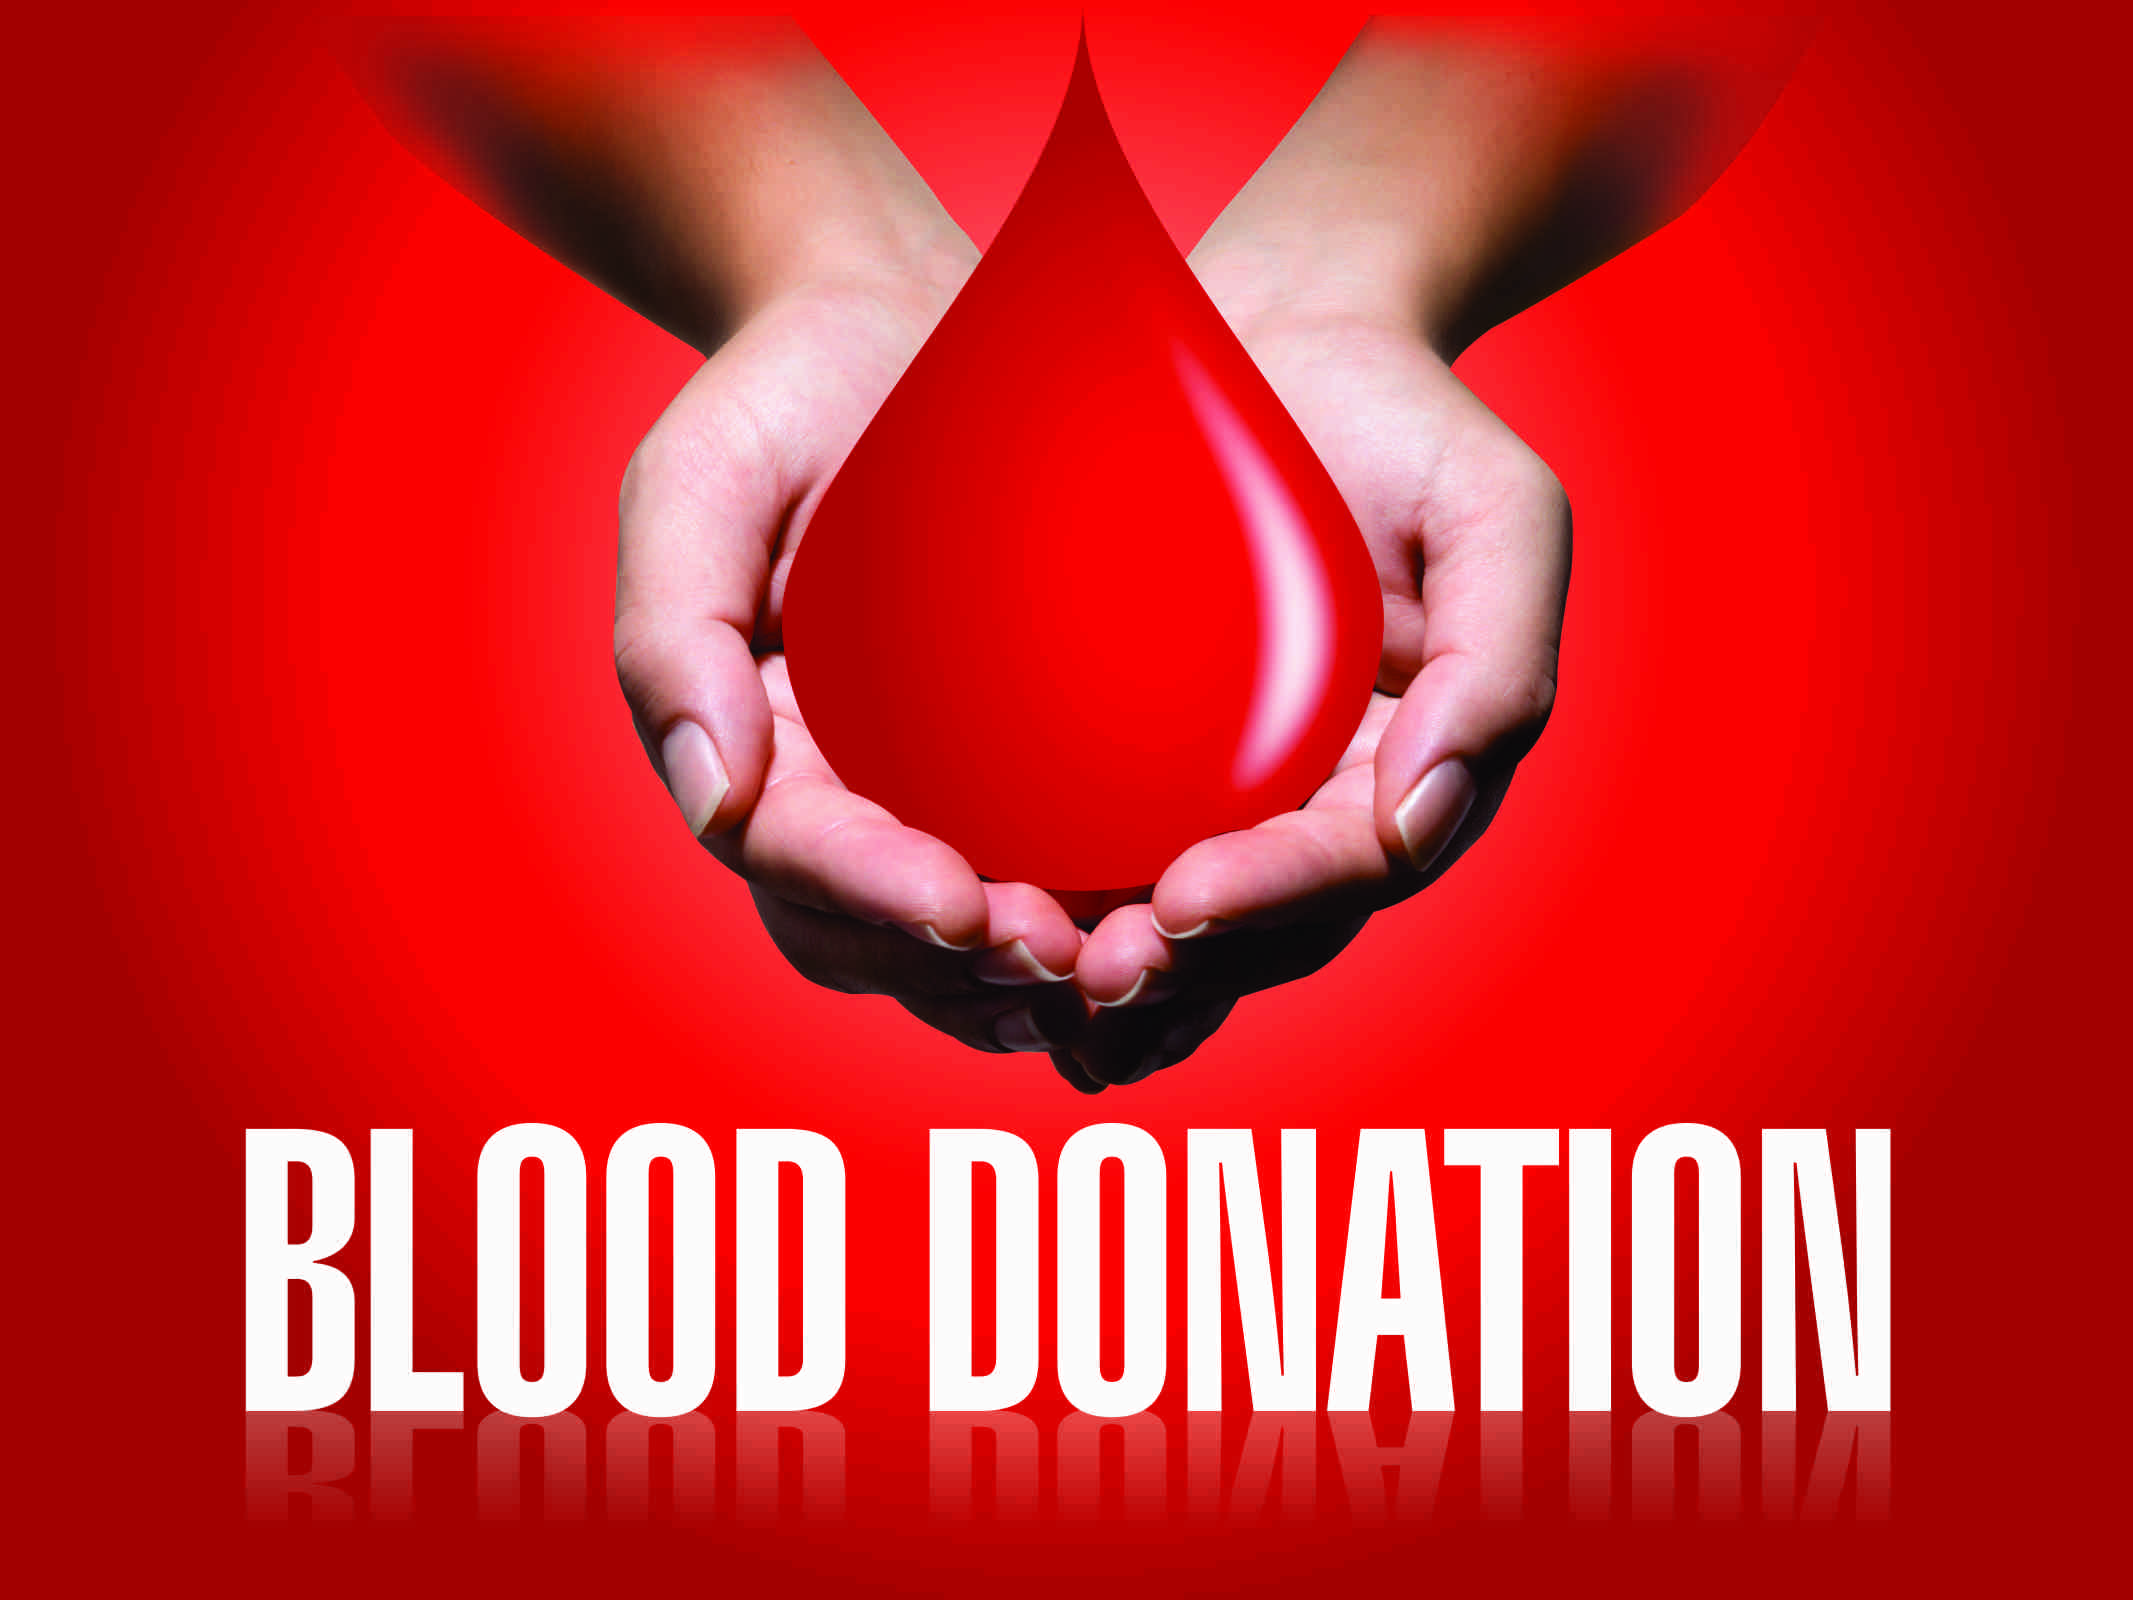 Blood Donation wallpapers Misc HQ Blood Donation pictures 4K 2133x1600